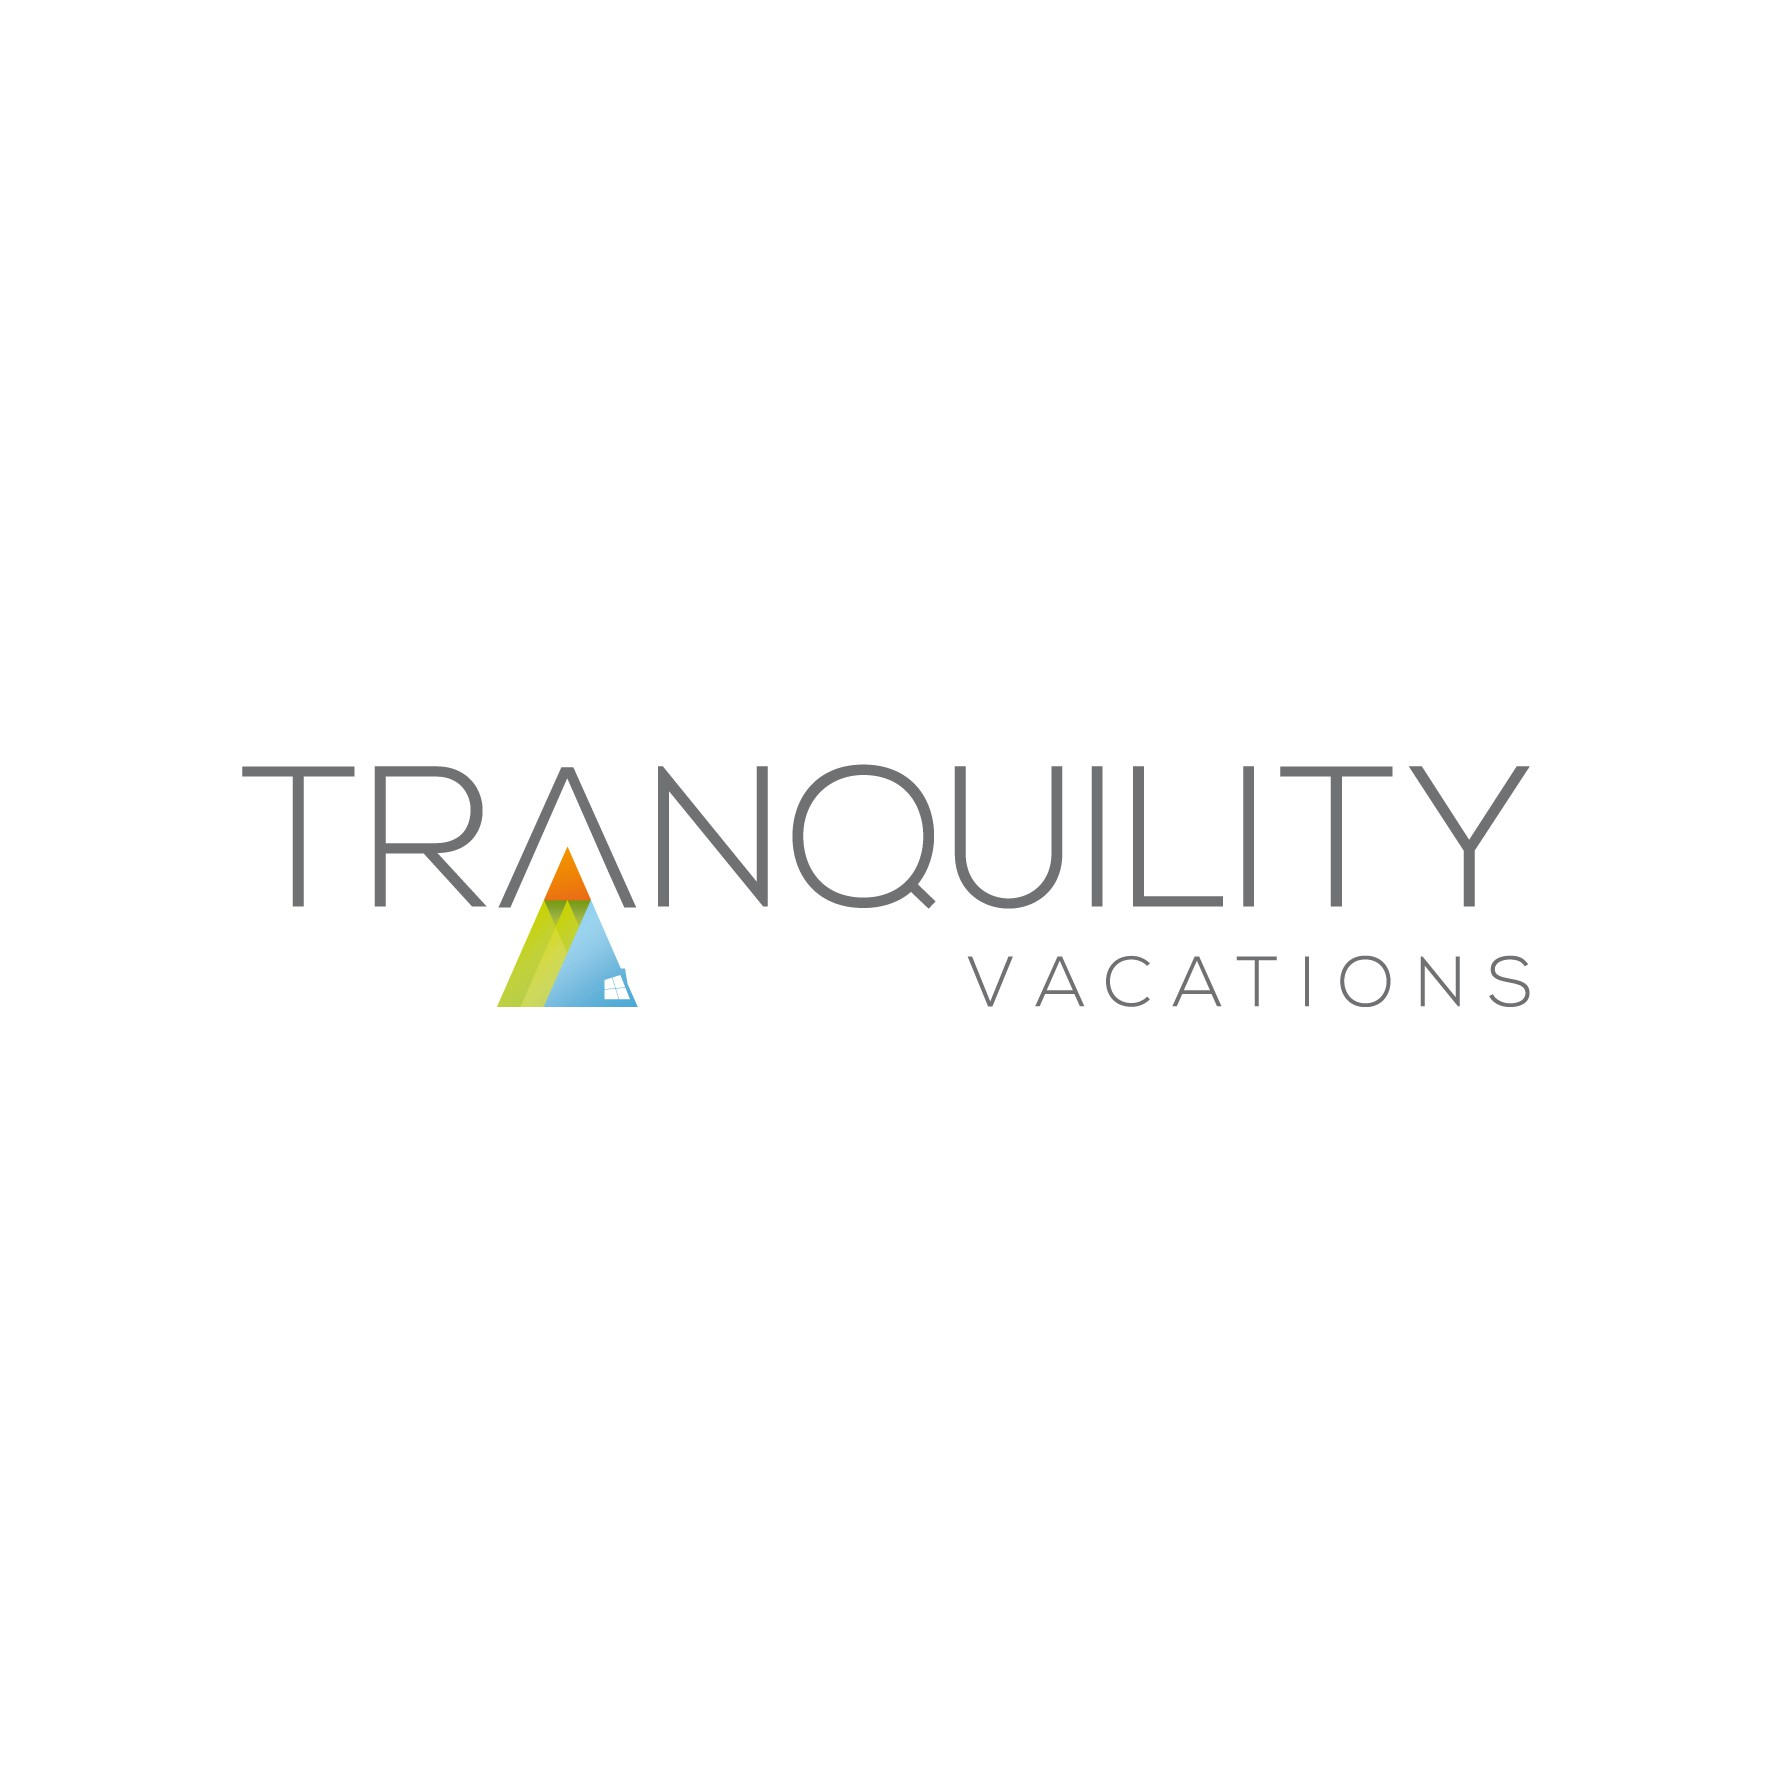 Tranquility Vacations needs a new logo